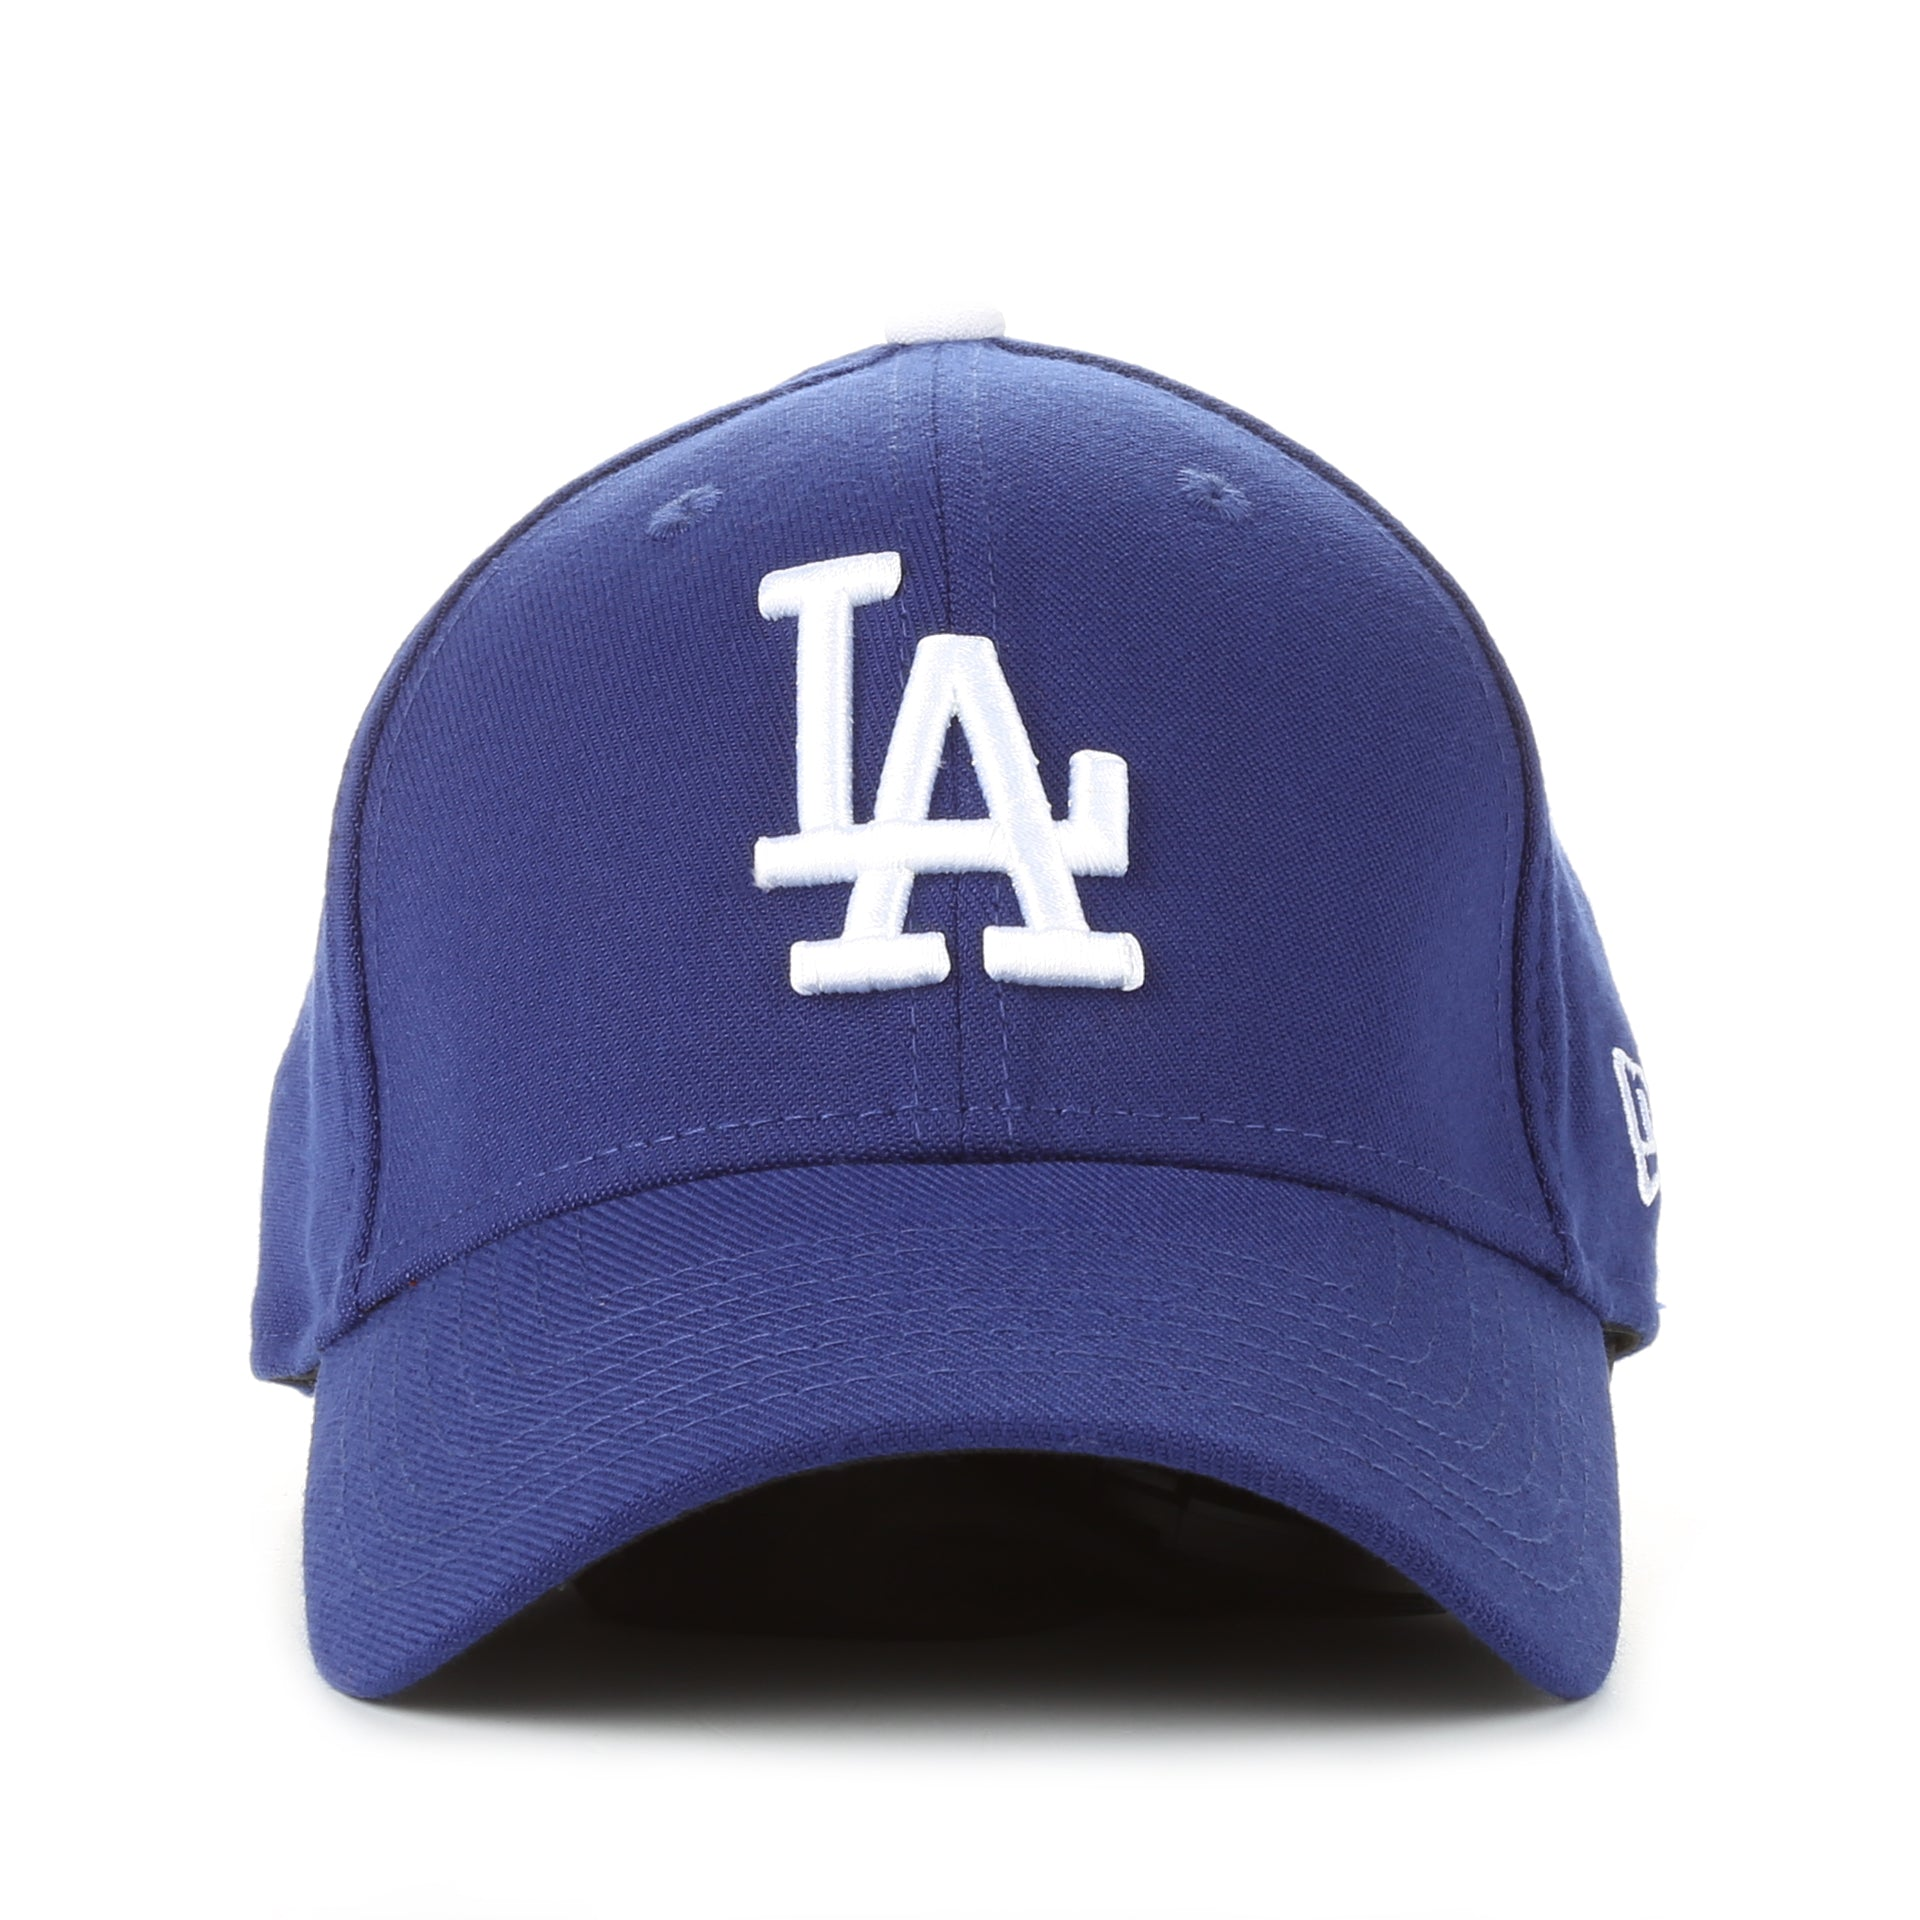 official photos a4122 ceb32 New Era 39Thirty Team Classic Stretch Fit Cap - Los Angeles Dodgers Blue